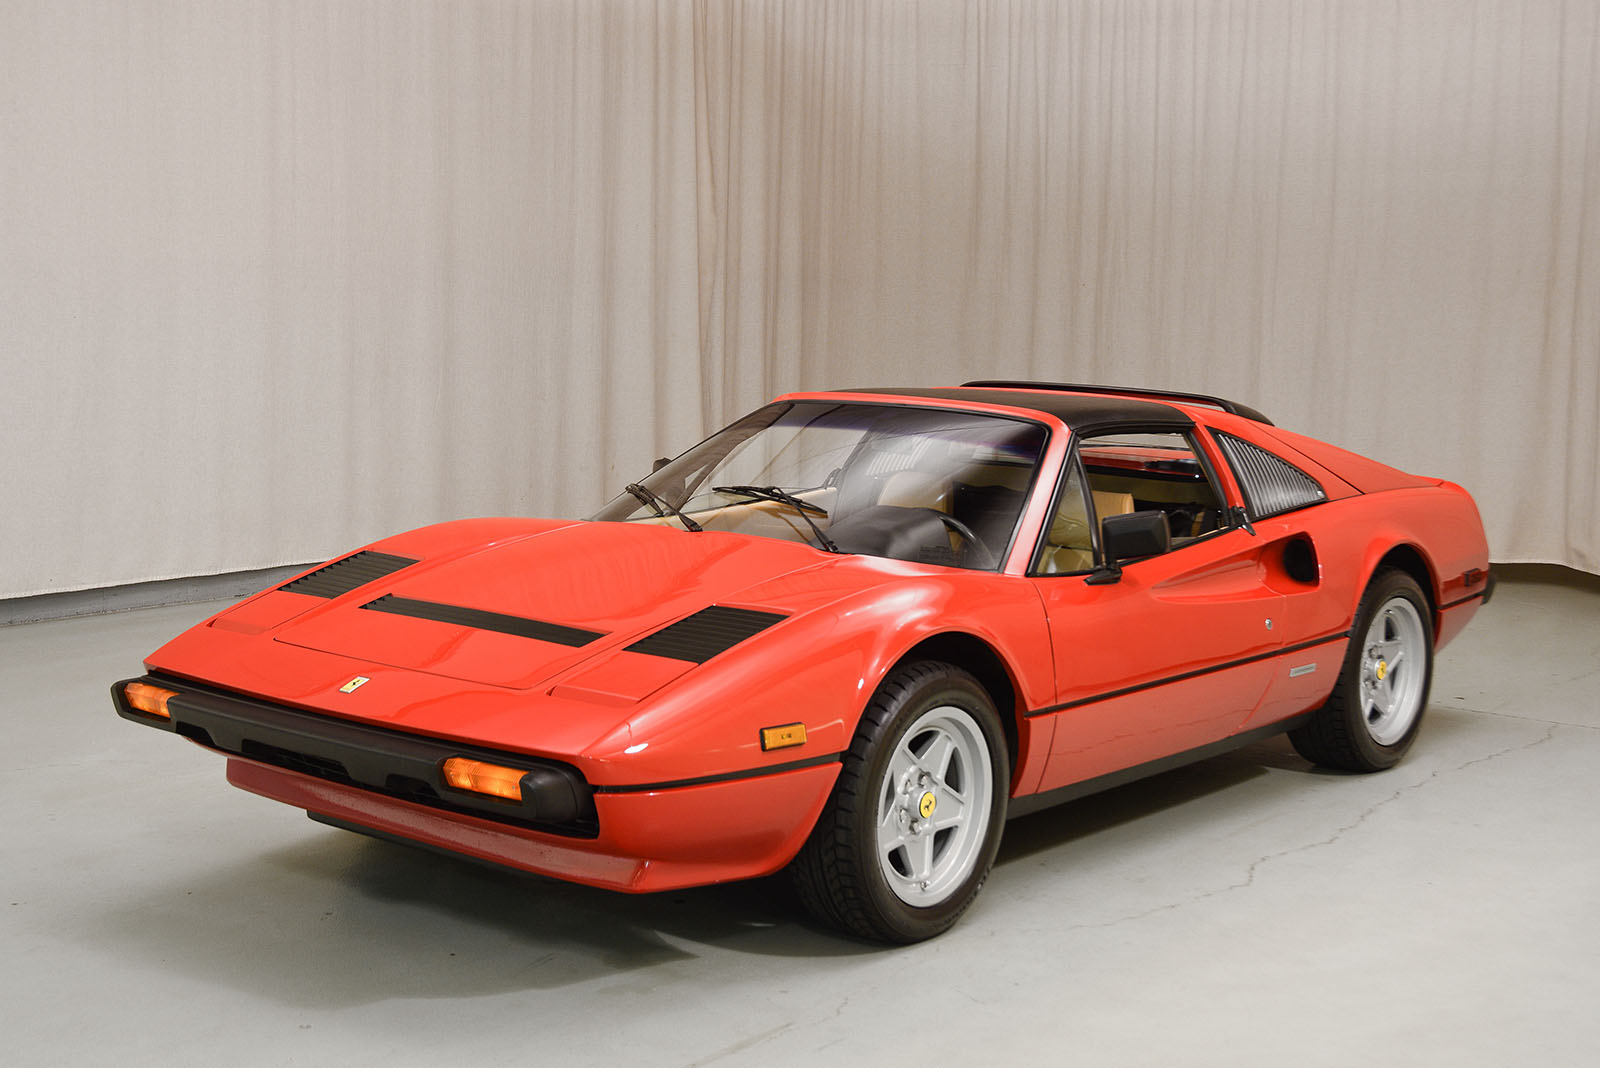 1985 ferrari 308 gtsi qv spyder hyman ltd classic cars. Black Bedroom Furniture Sets. Home Design Ideas